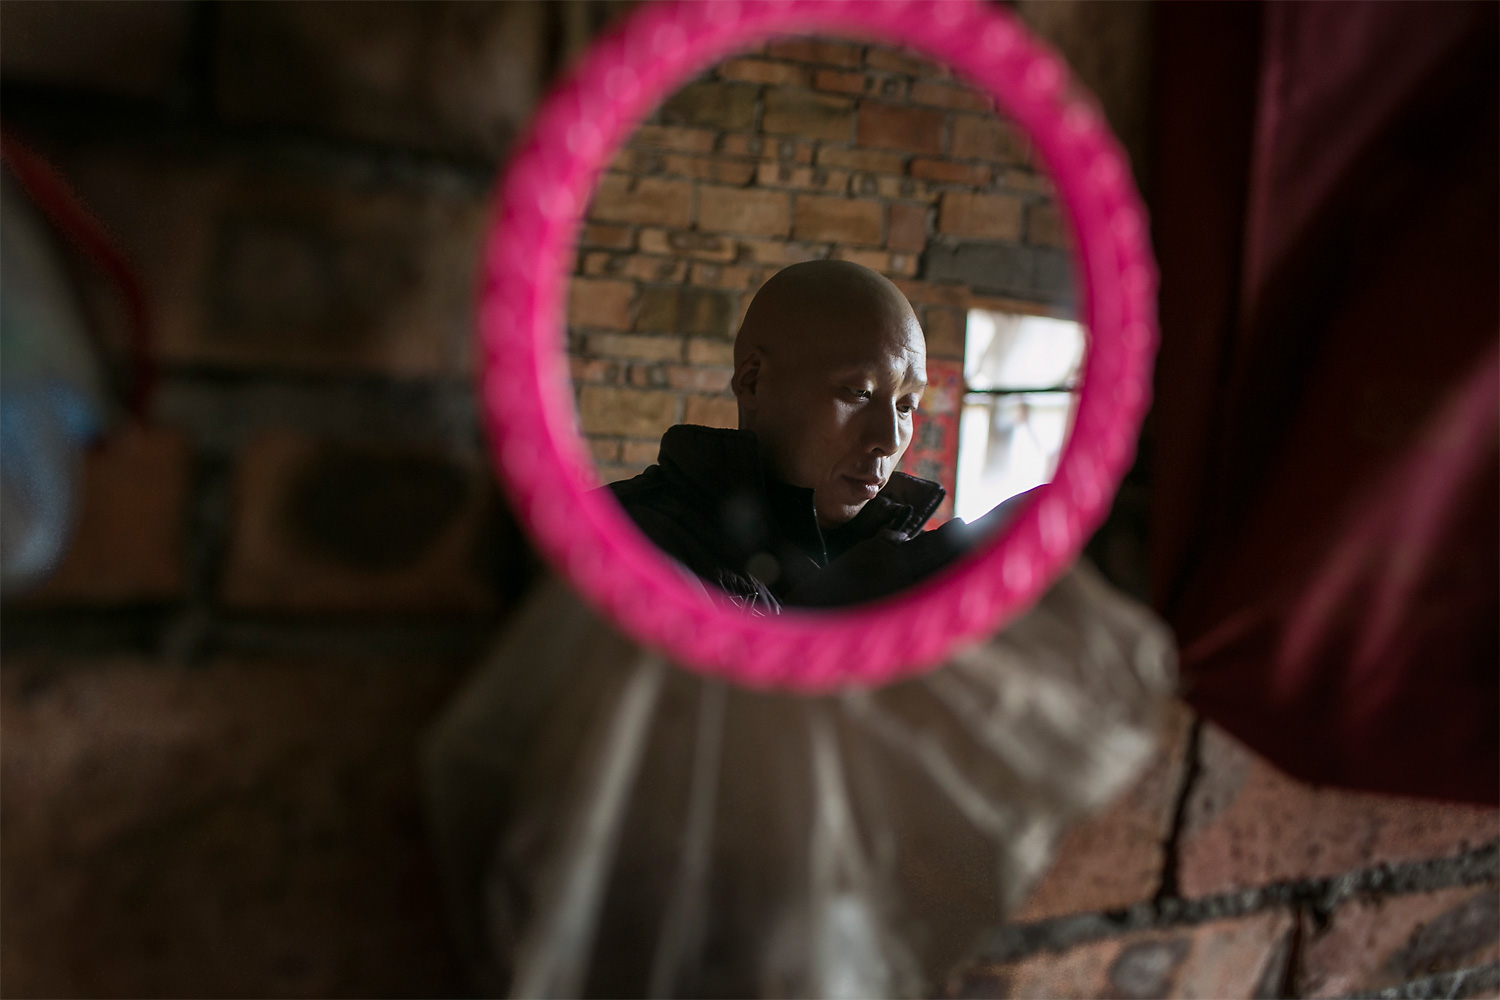 Li Mingjin puts on his hat in front a mirror at home, in Longjing village. He shaved his head because of the chemotherapy. In winter, he feels cold without hair, so he always wears a hat. Mingjin had worked as a miner in Shanxi province for 19 years, but in November 2014 he was diagnosed with lung cancer.